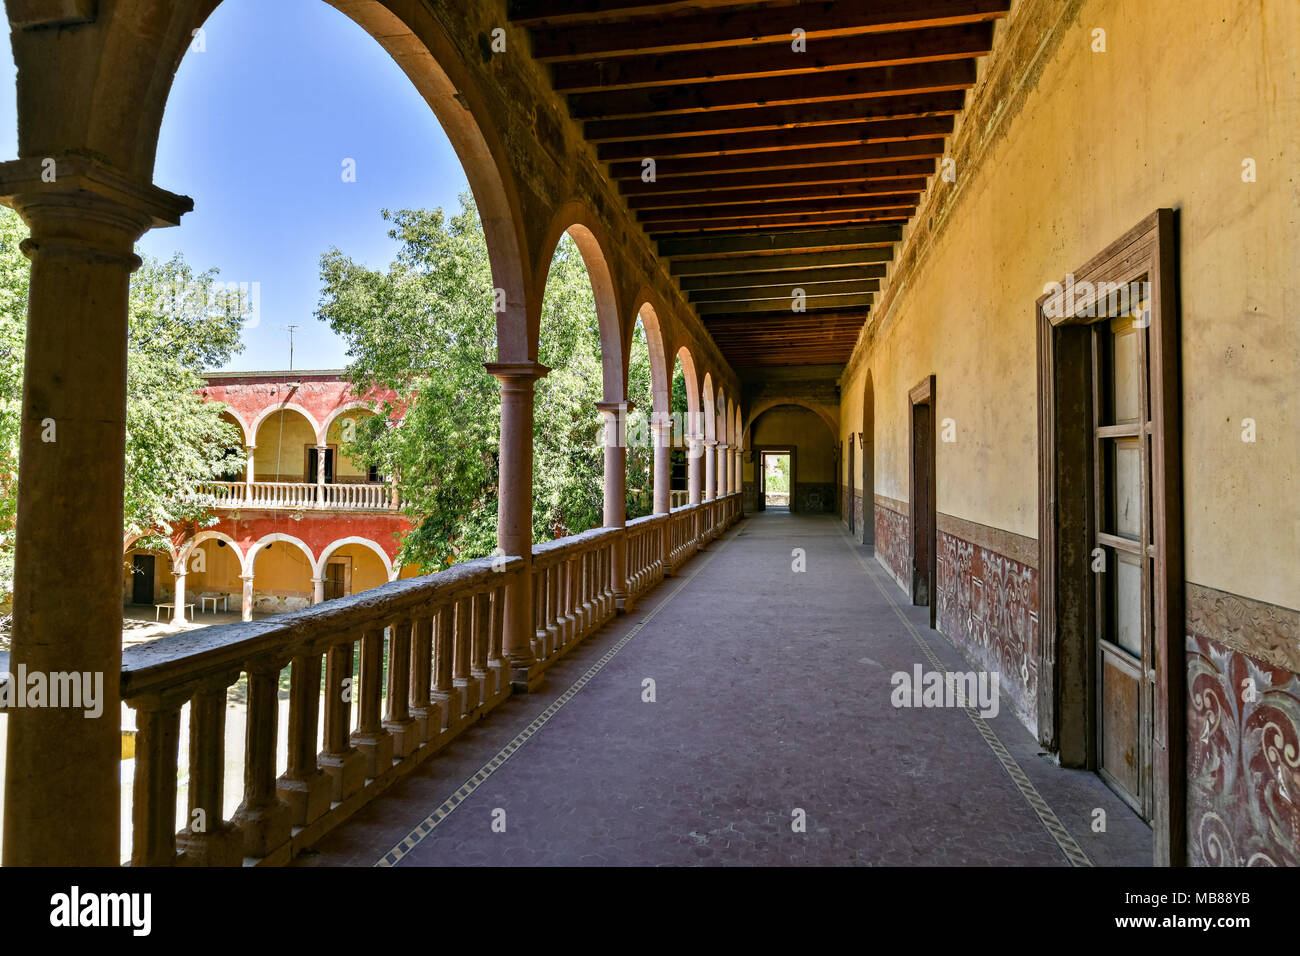 The derelict and crumbling Hacienda de Jaral de Berrio in Jaral de Berrios, Guanajuato, Mexico. The abandoned Jaral de Berrio hacienda was once the largest in Mexico and housed over 6,000 people on the property and is credited with creating Mescal. - Stock Image